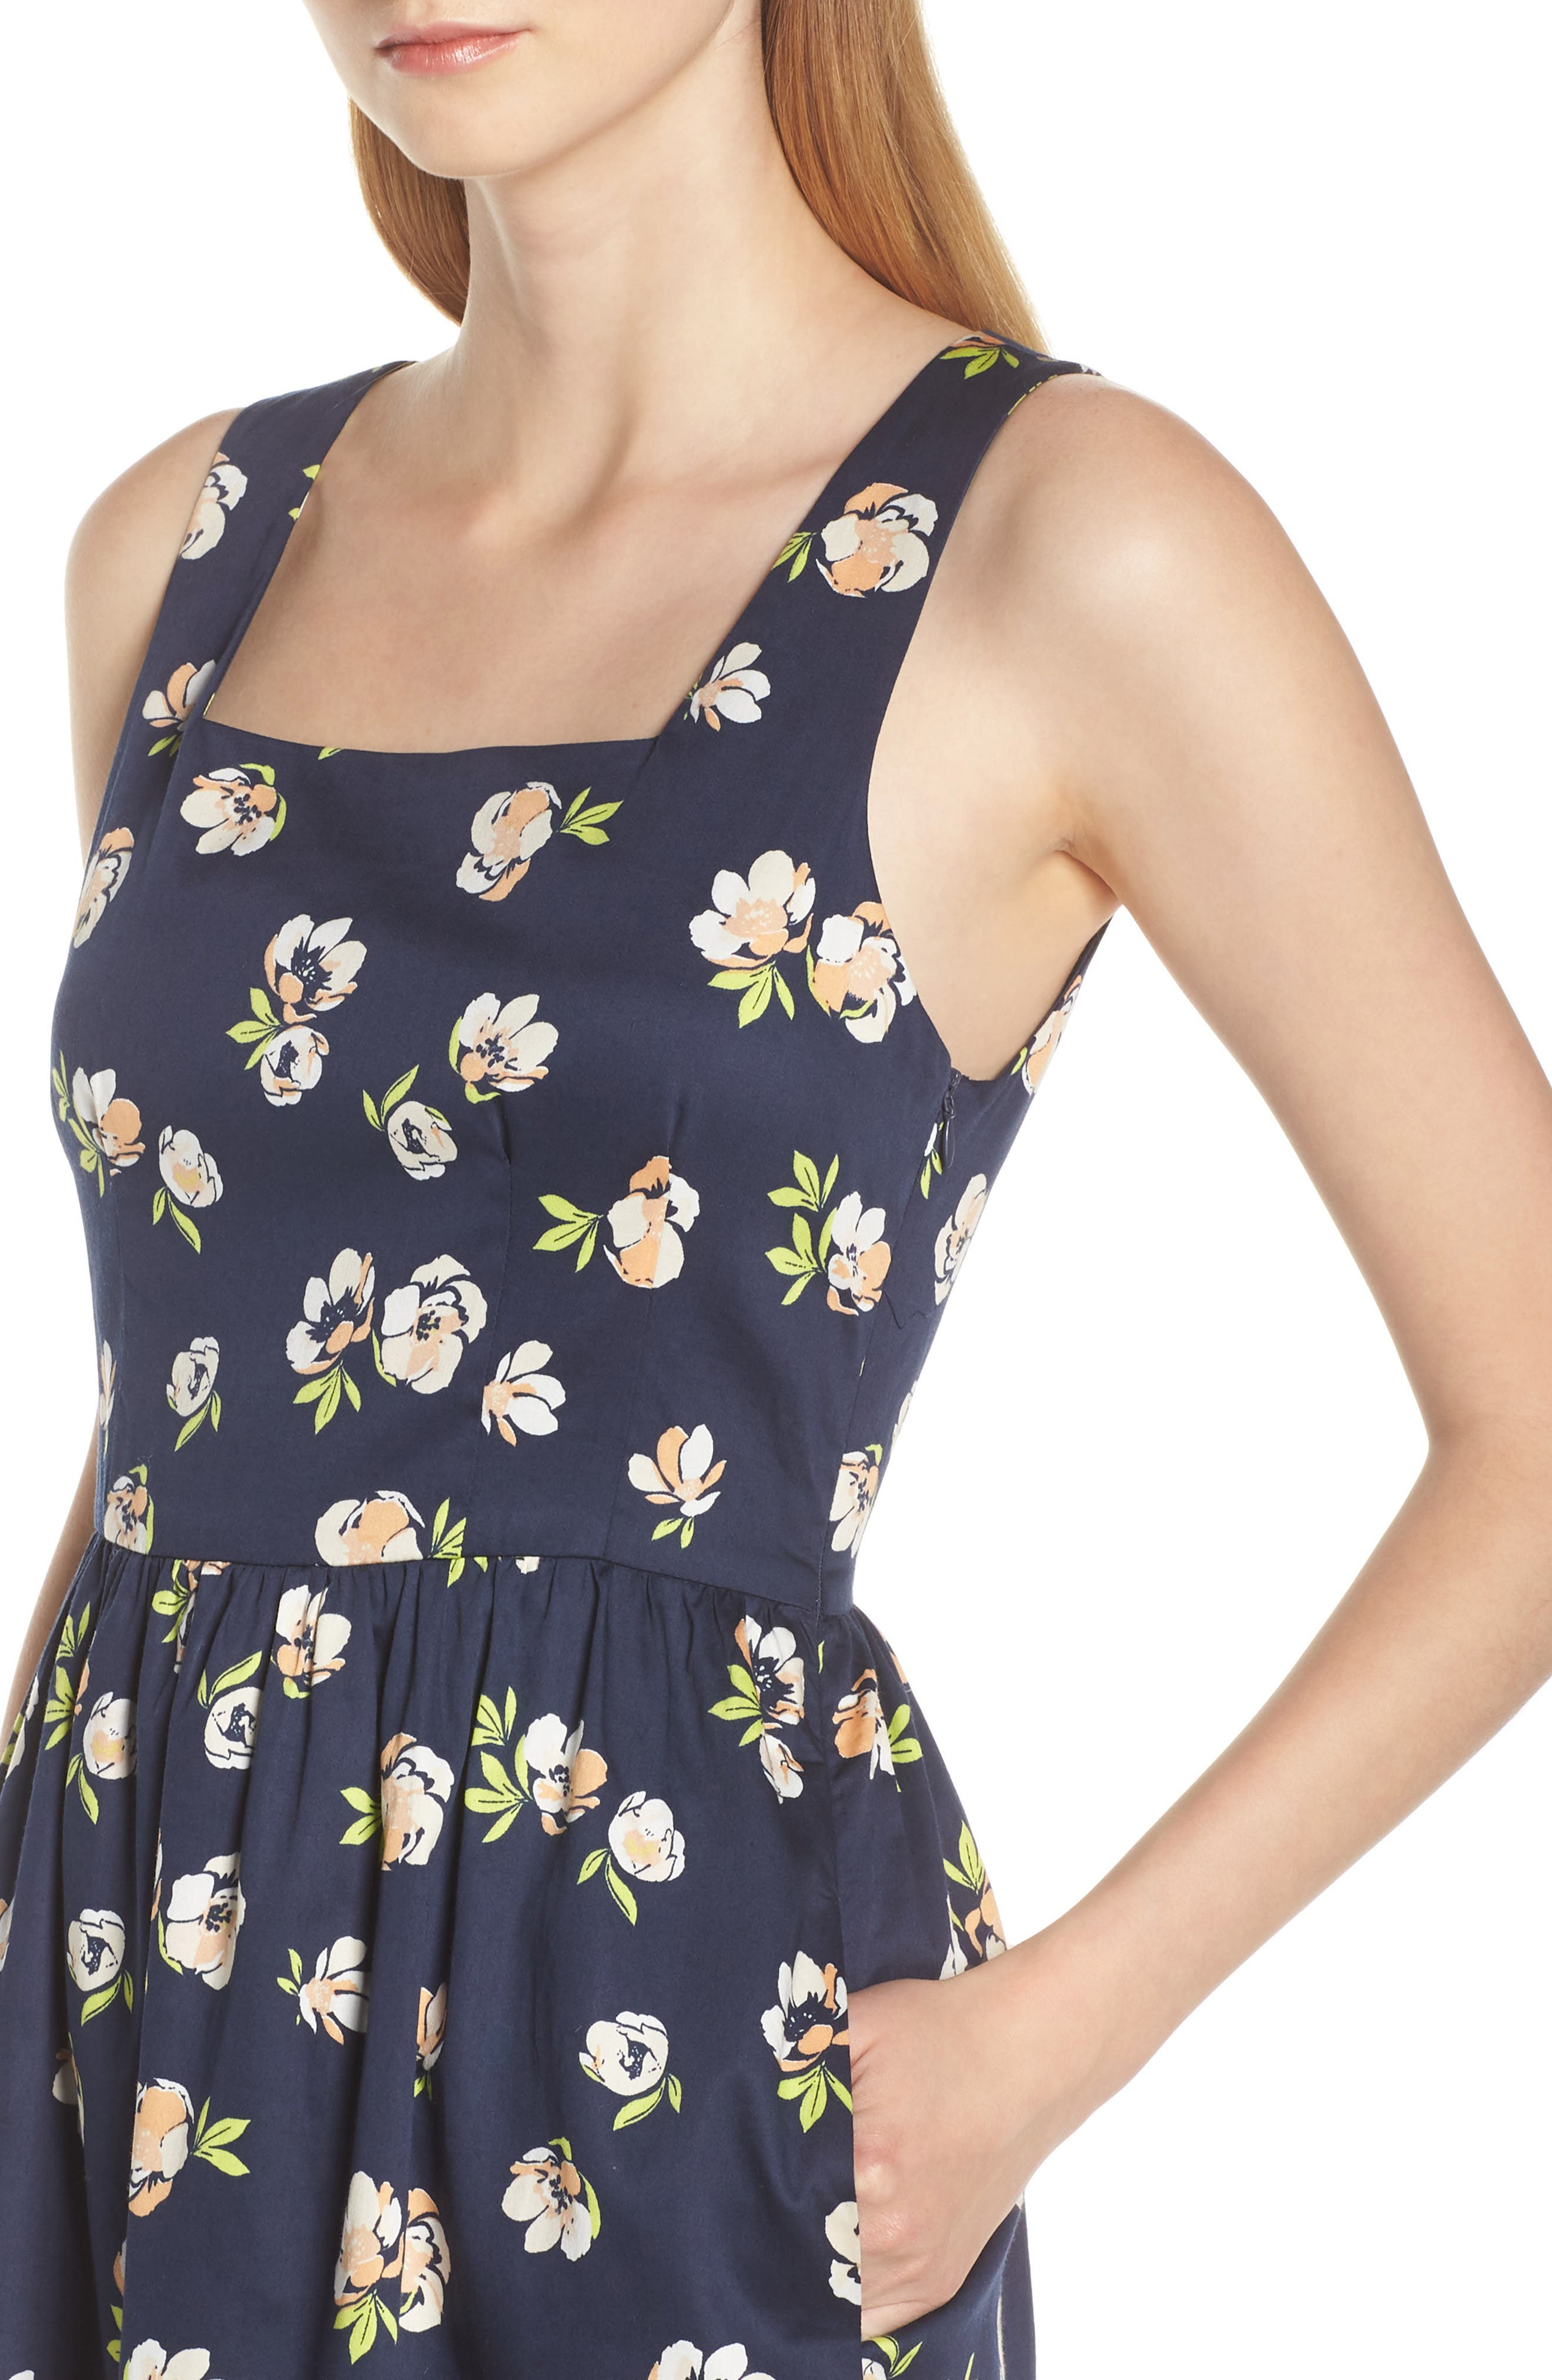 CHARLES HENRY, Sleeveless Fit & Flare Dress, Alternate thumbnail 5, color, NAVY PEACH FLORAL